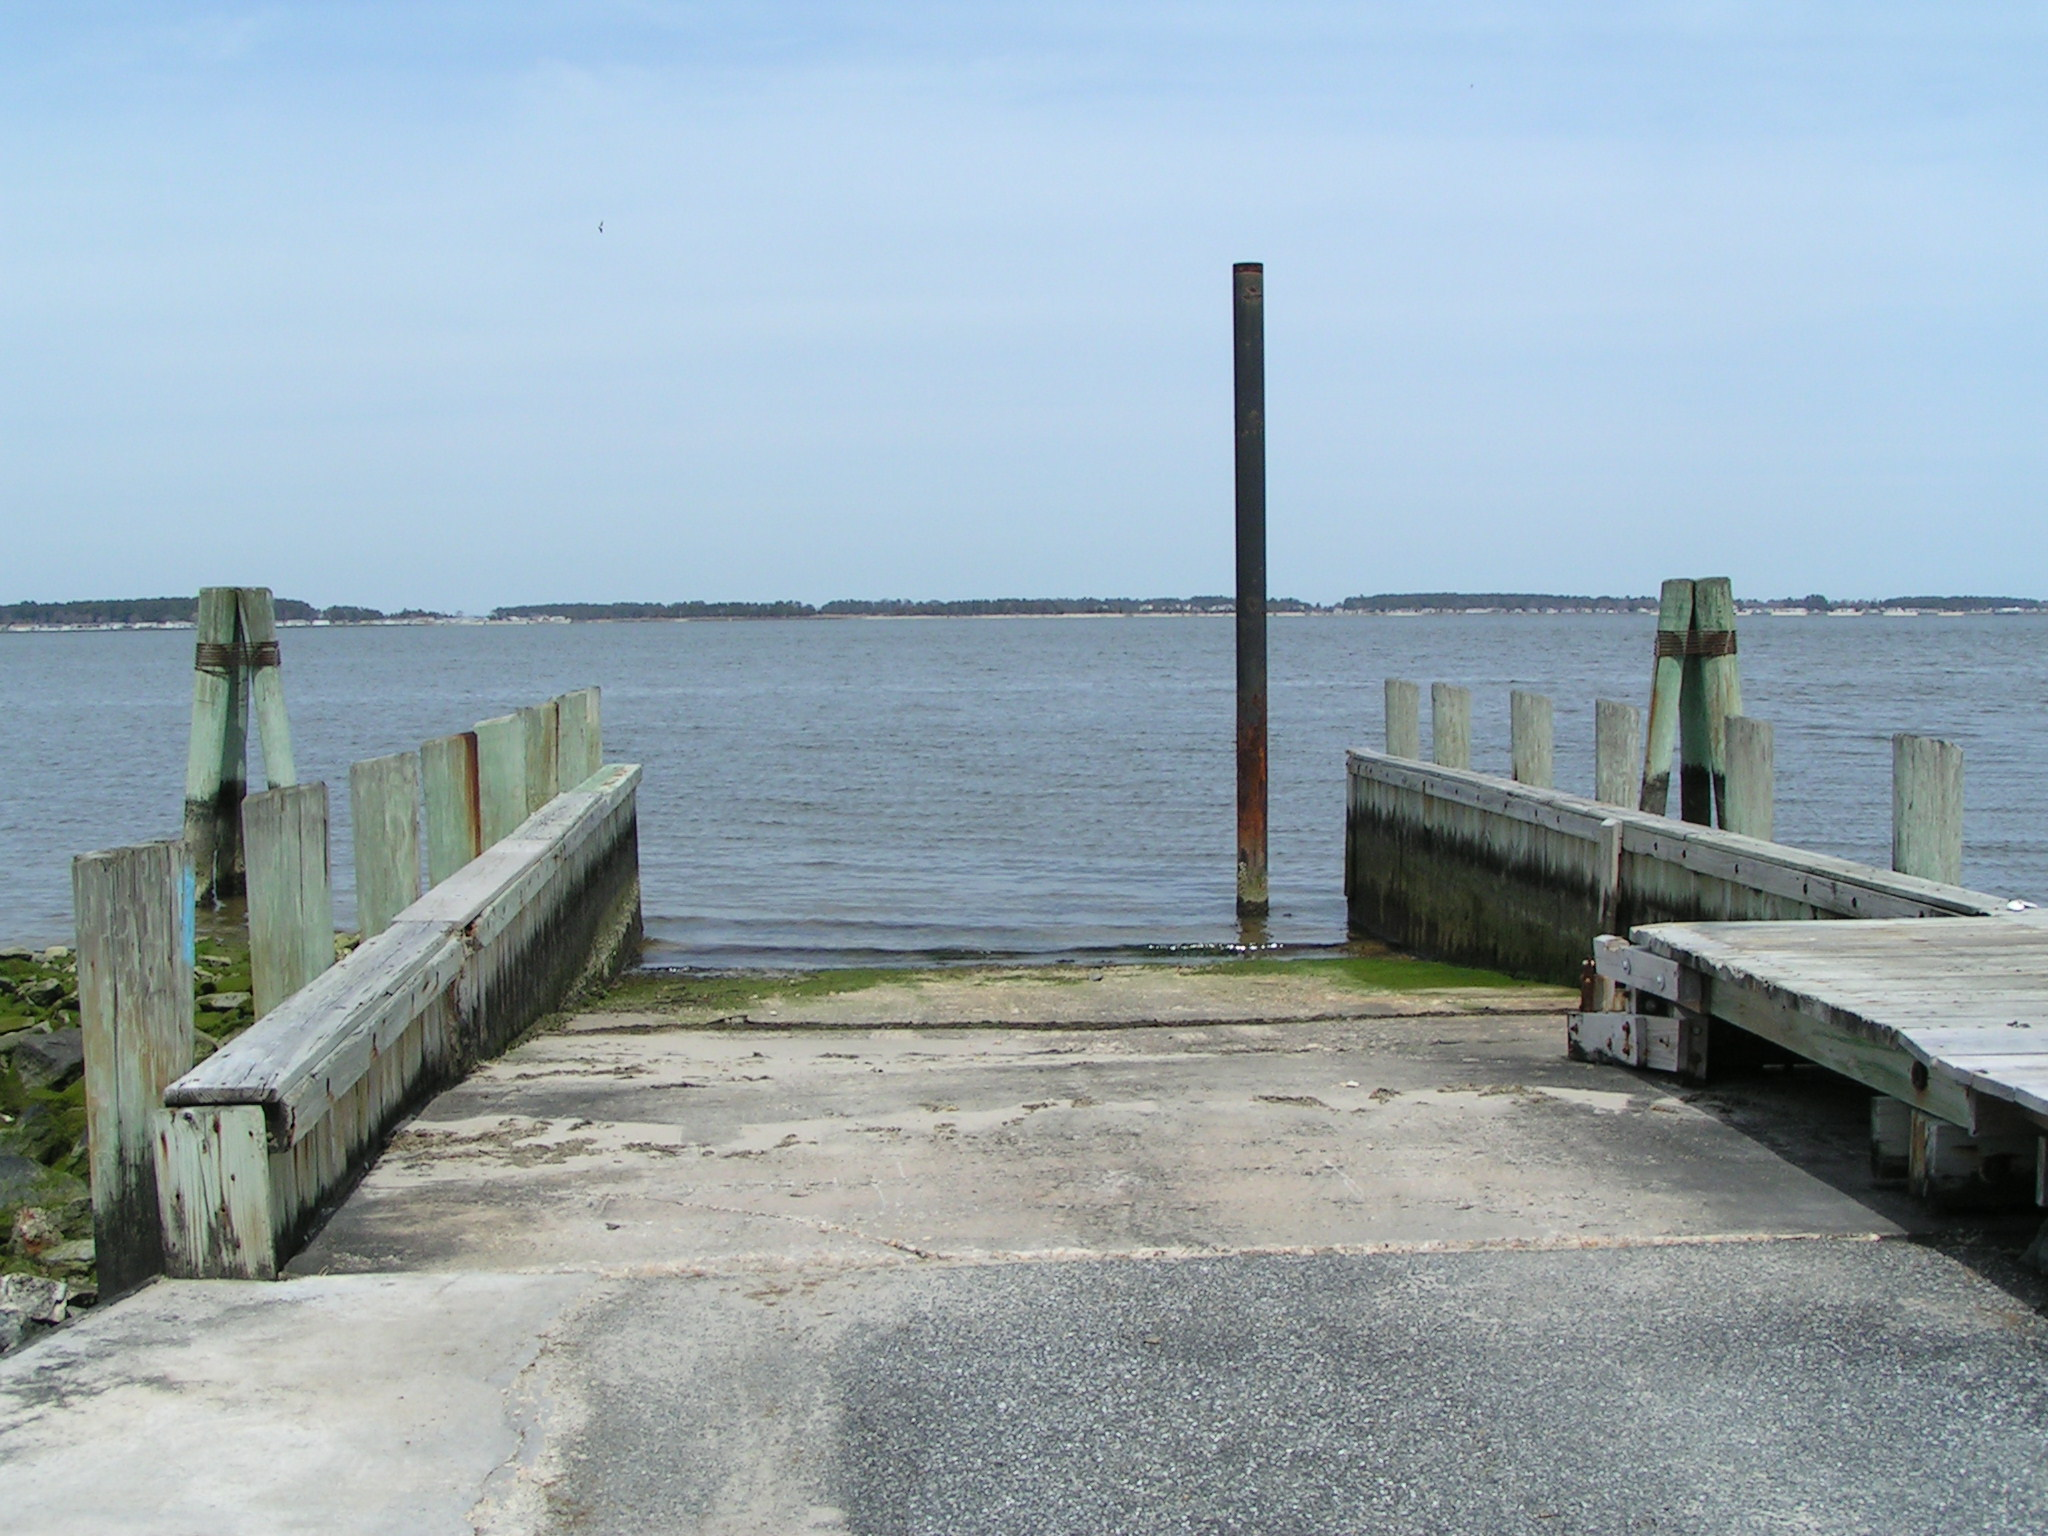 holts landing boat ramp, delaware state park, sussex county